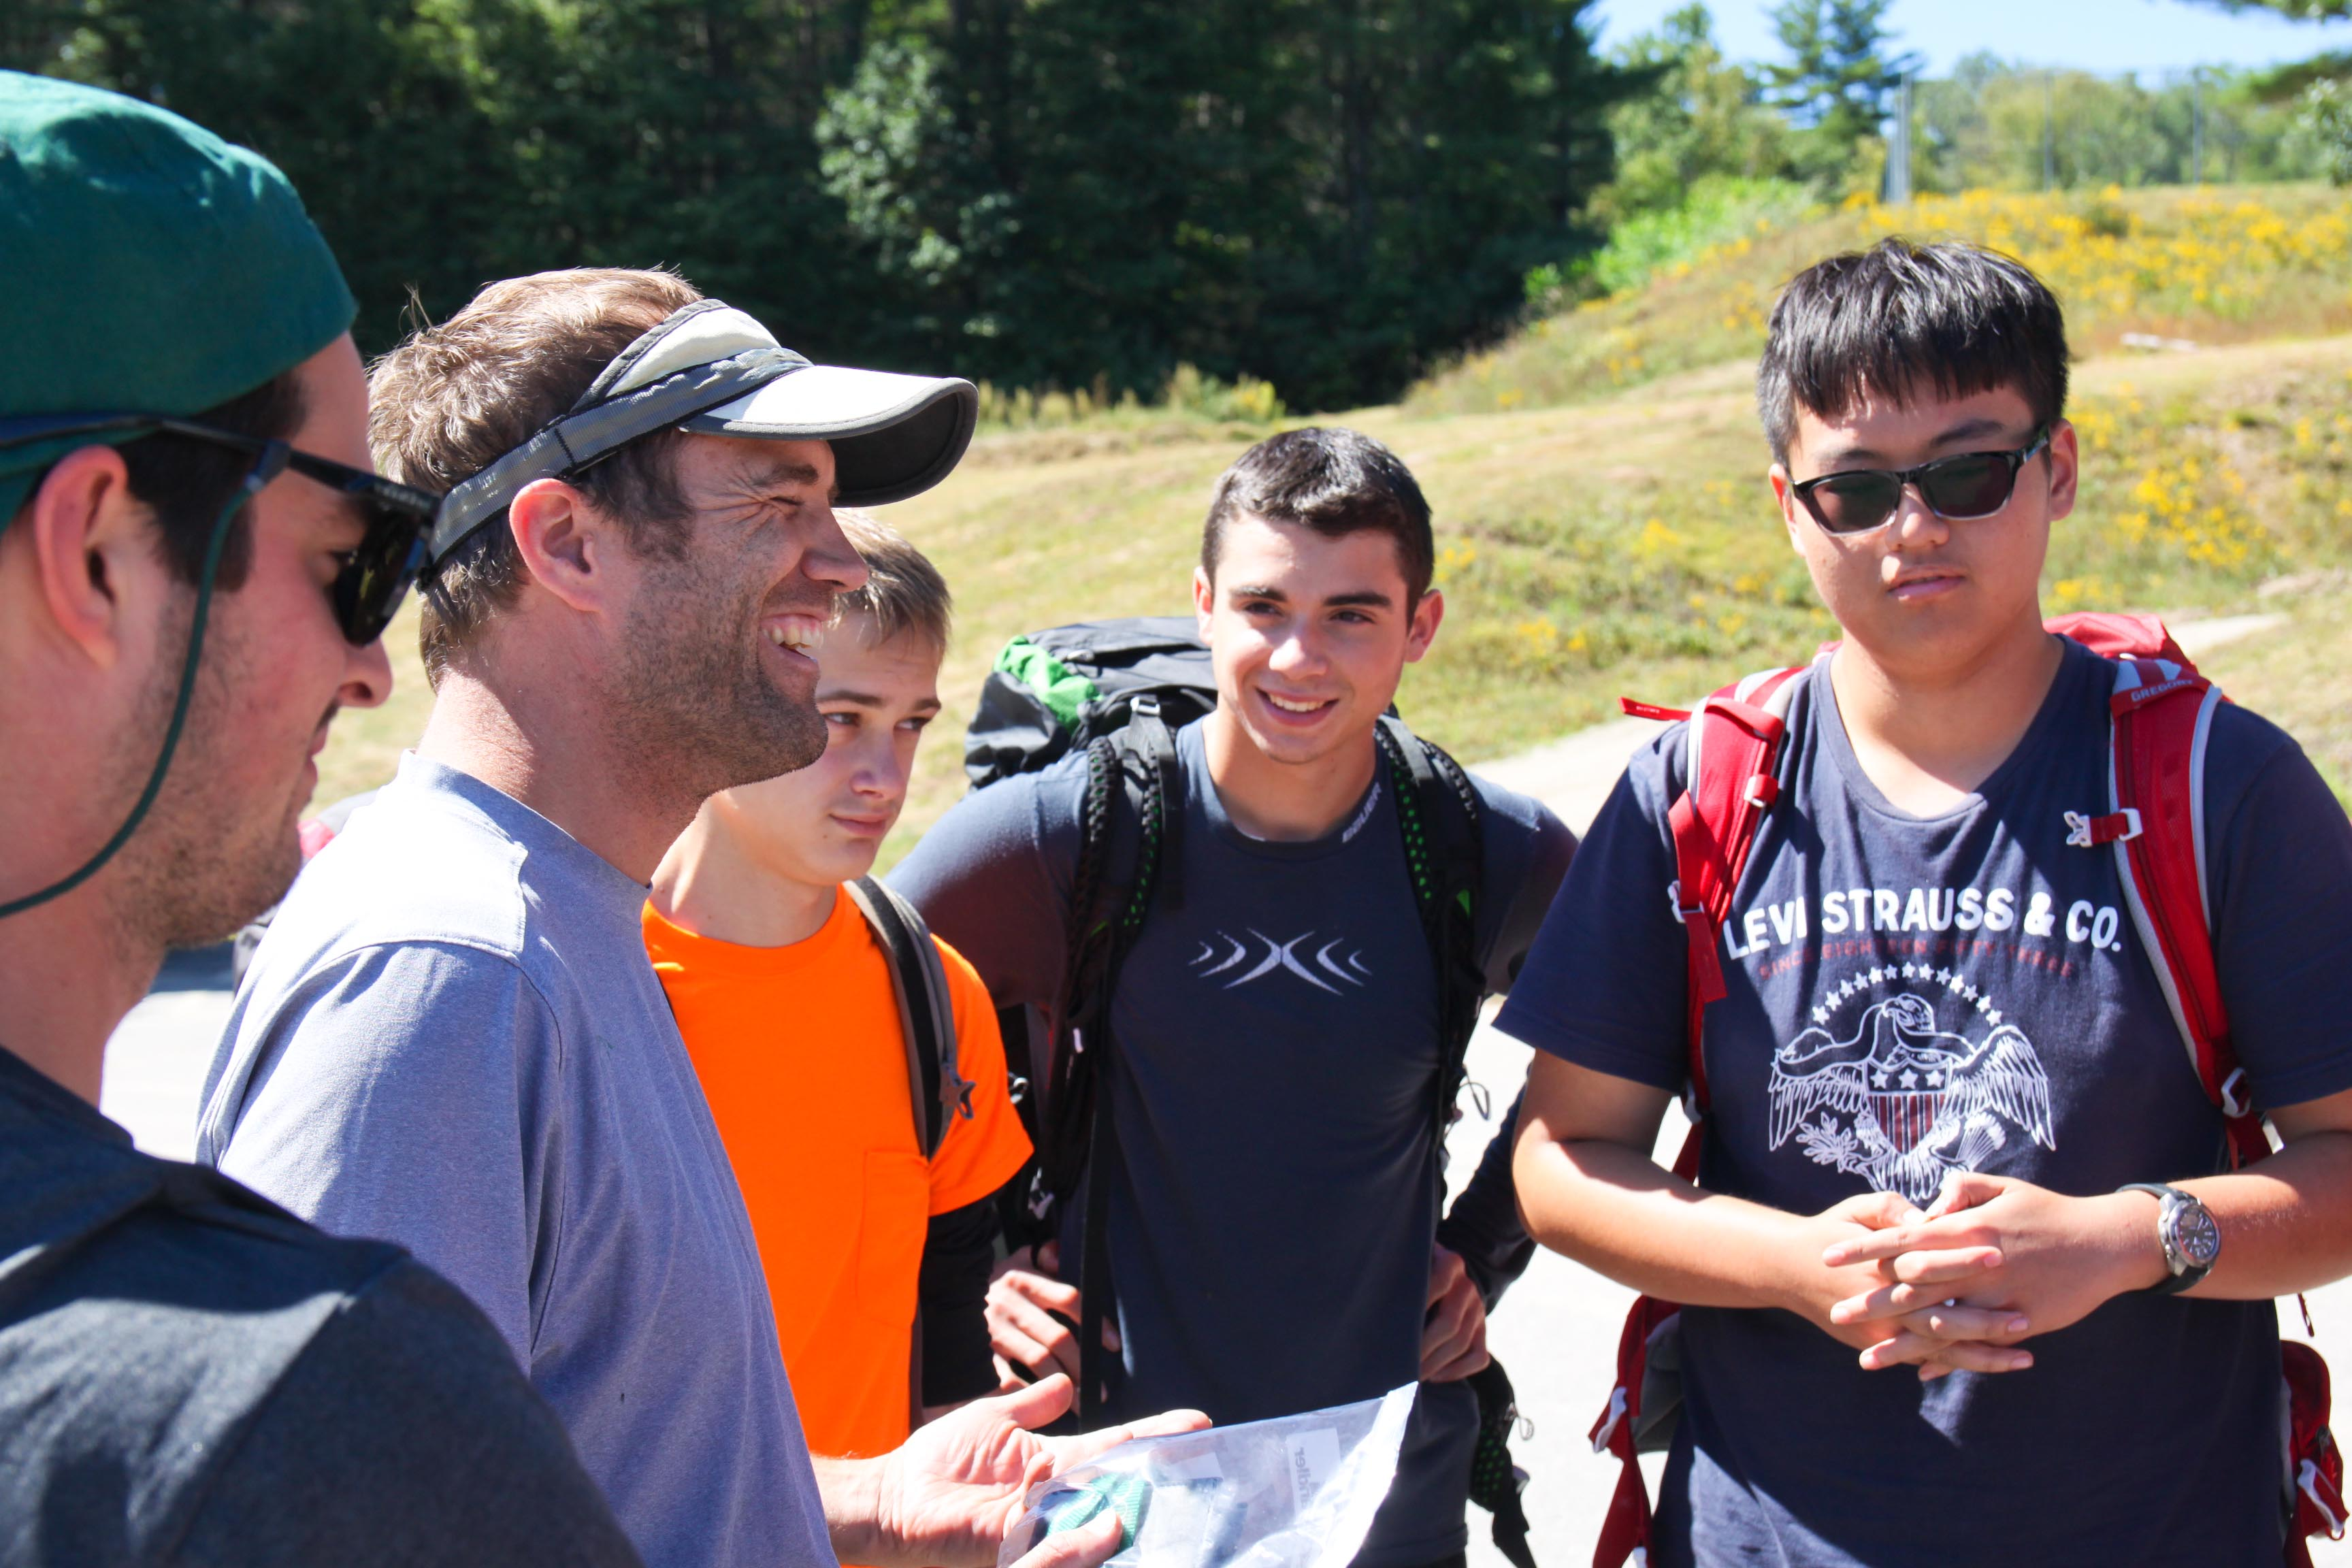 Proctor Academy Wilderness Orientation returns 3